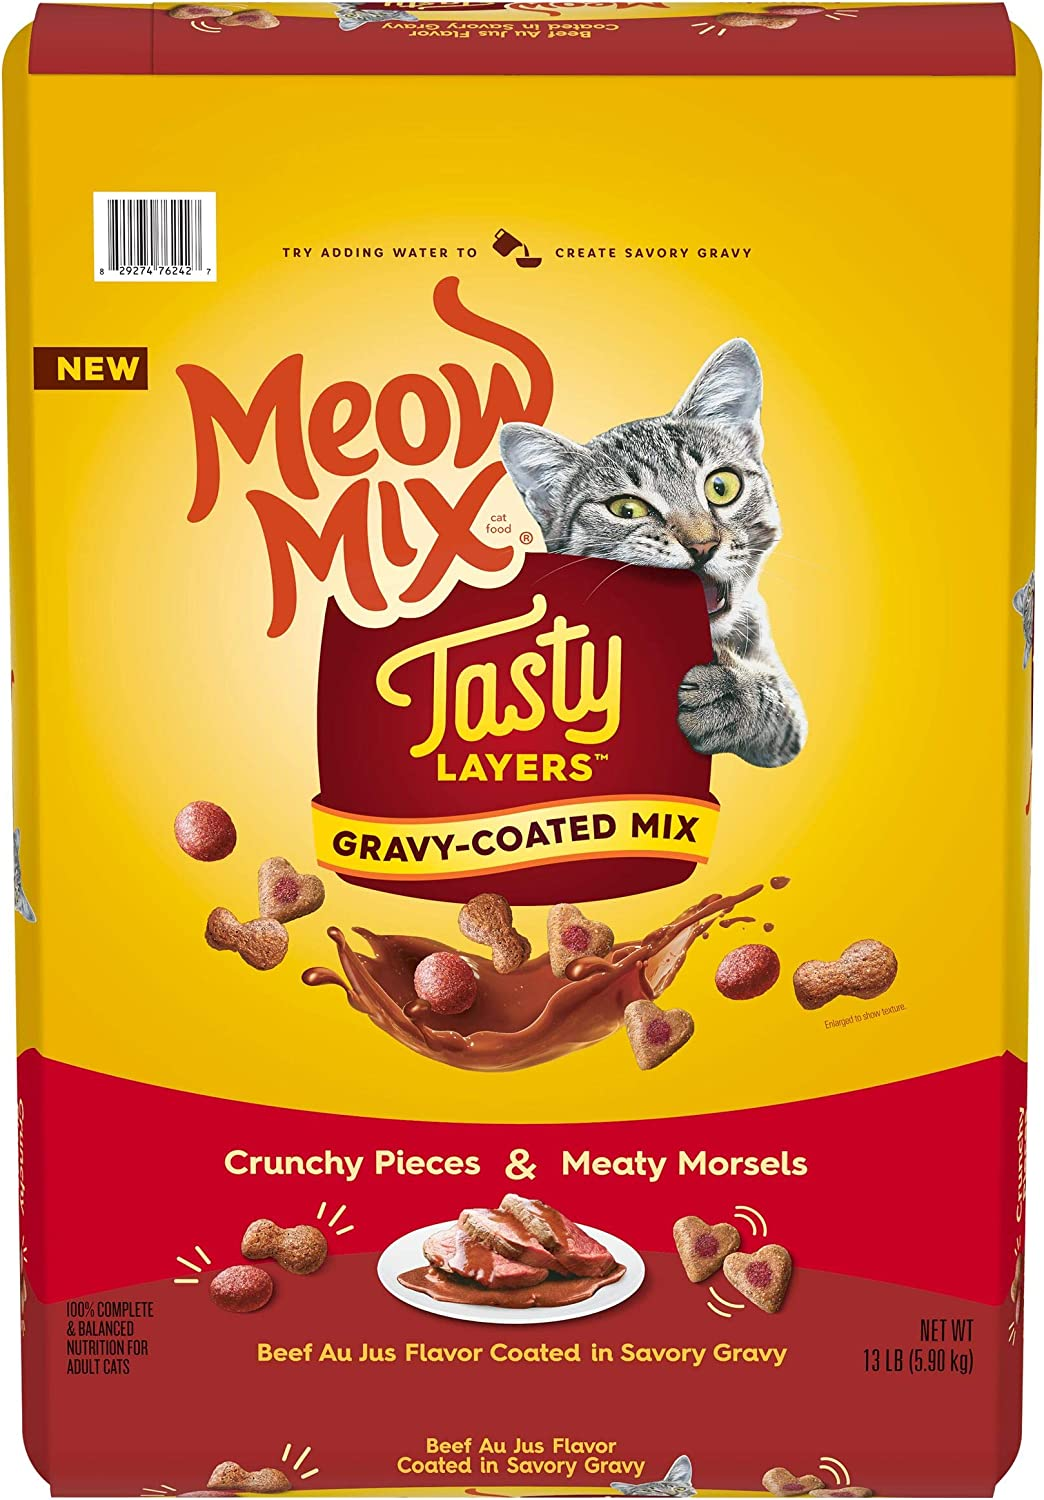 Meow Mix Tasty Layers Dry Cat Food, 13 Pounds